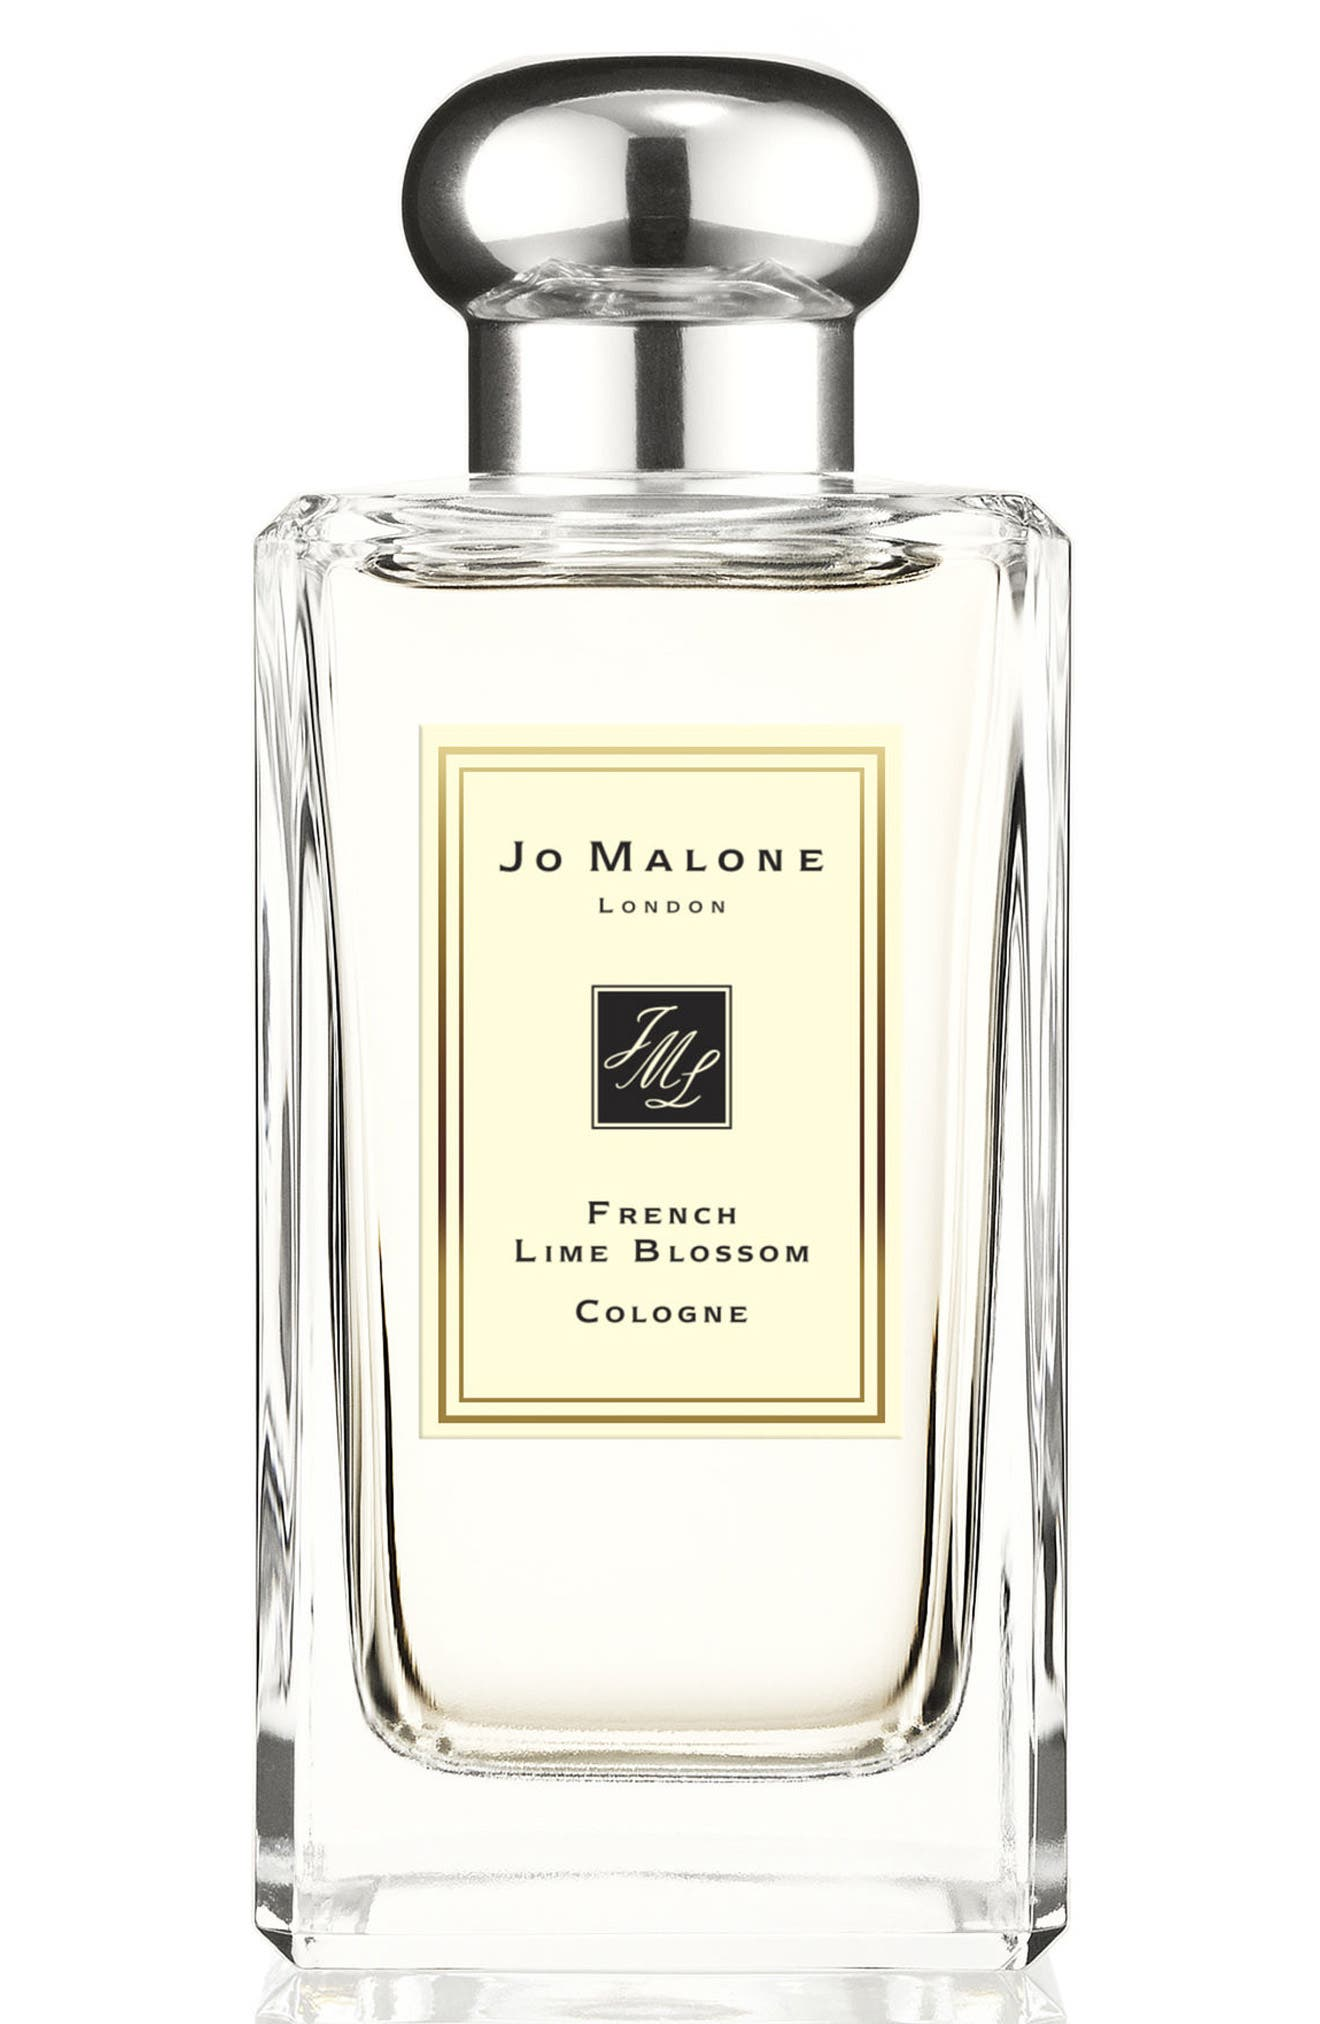 Jo Malone London™ 'French Lime Blossom' Cologne (3.4 oz.)